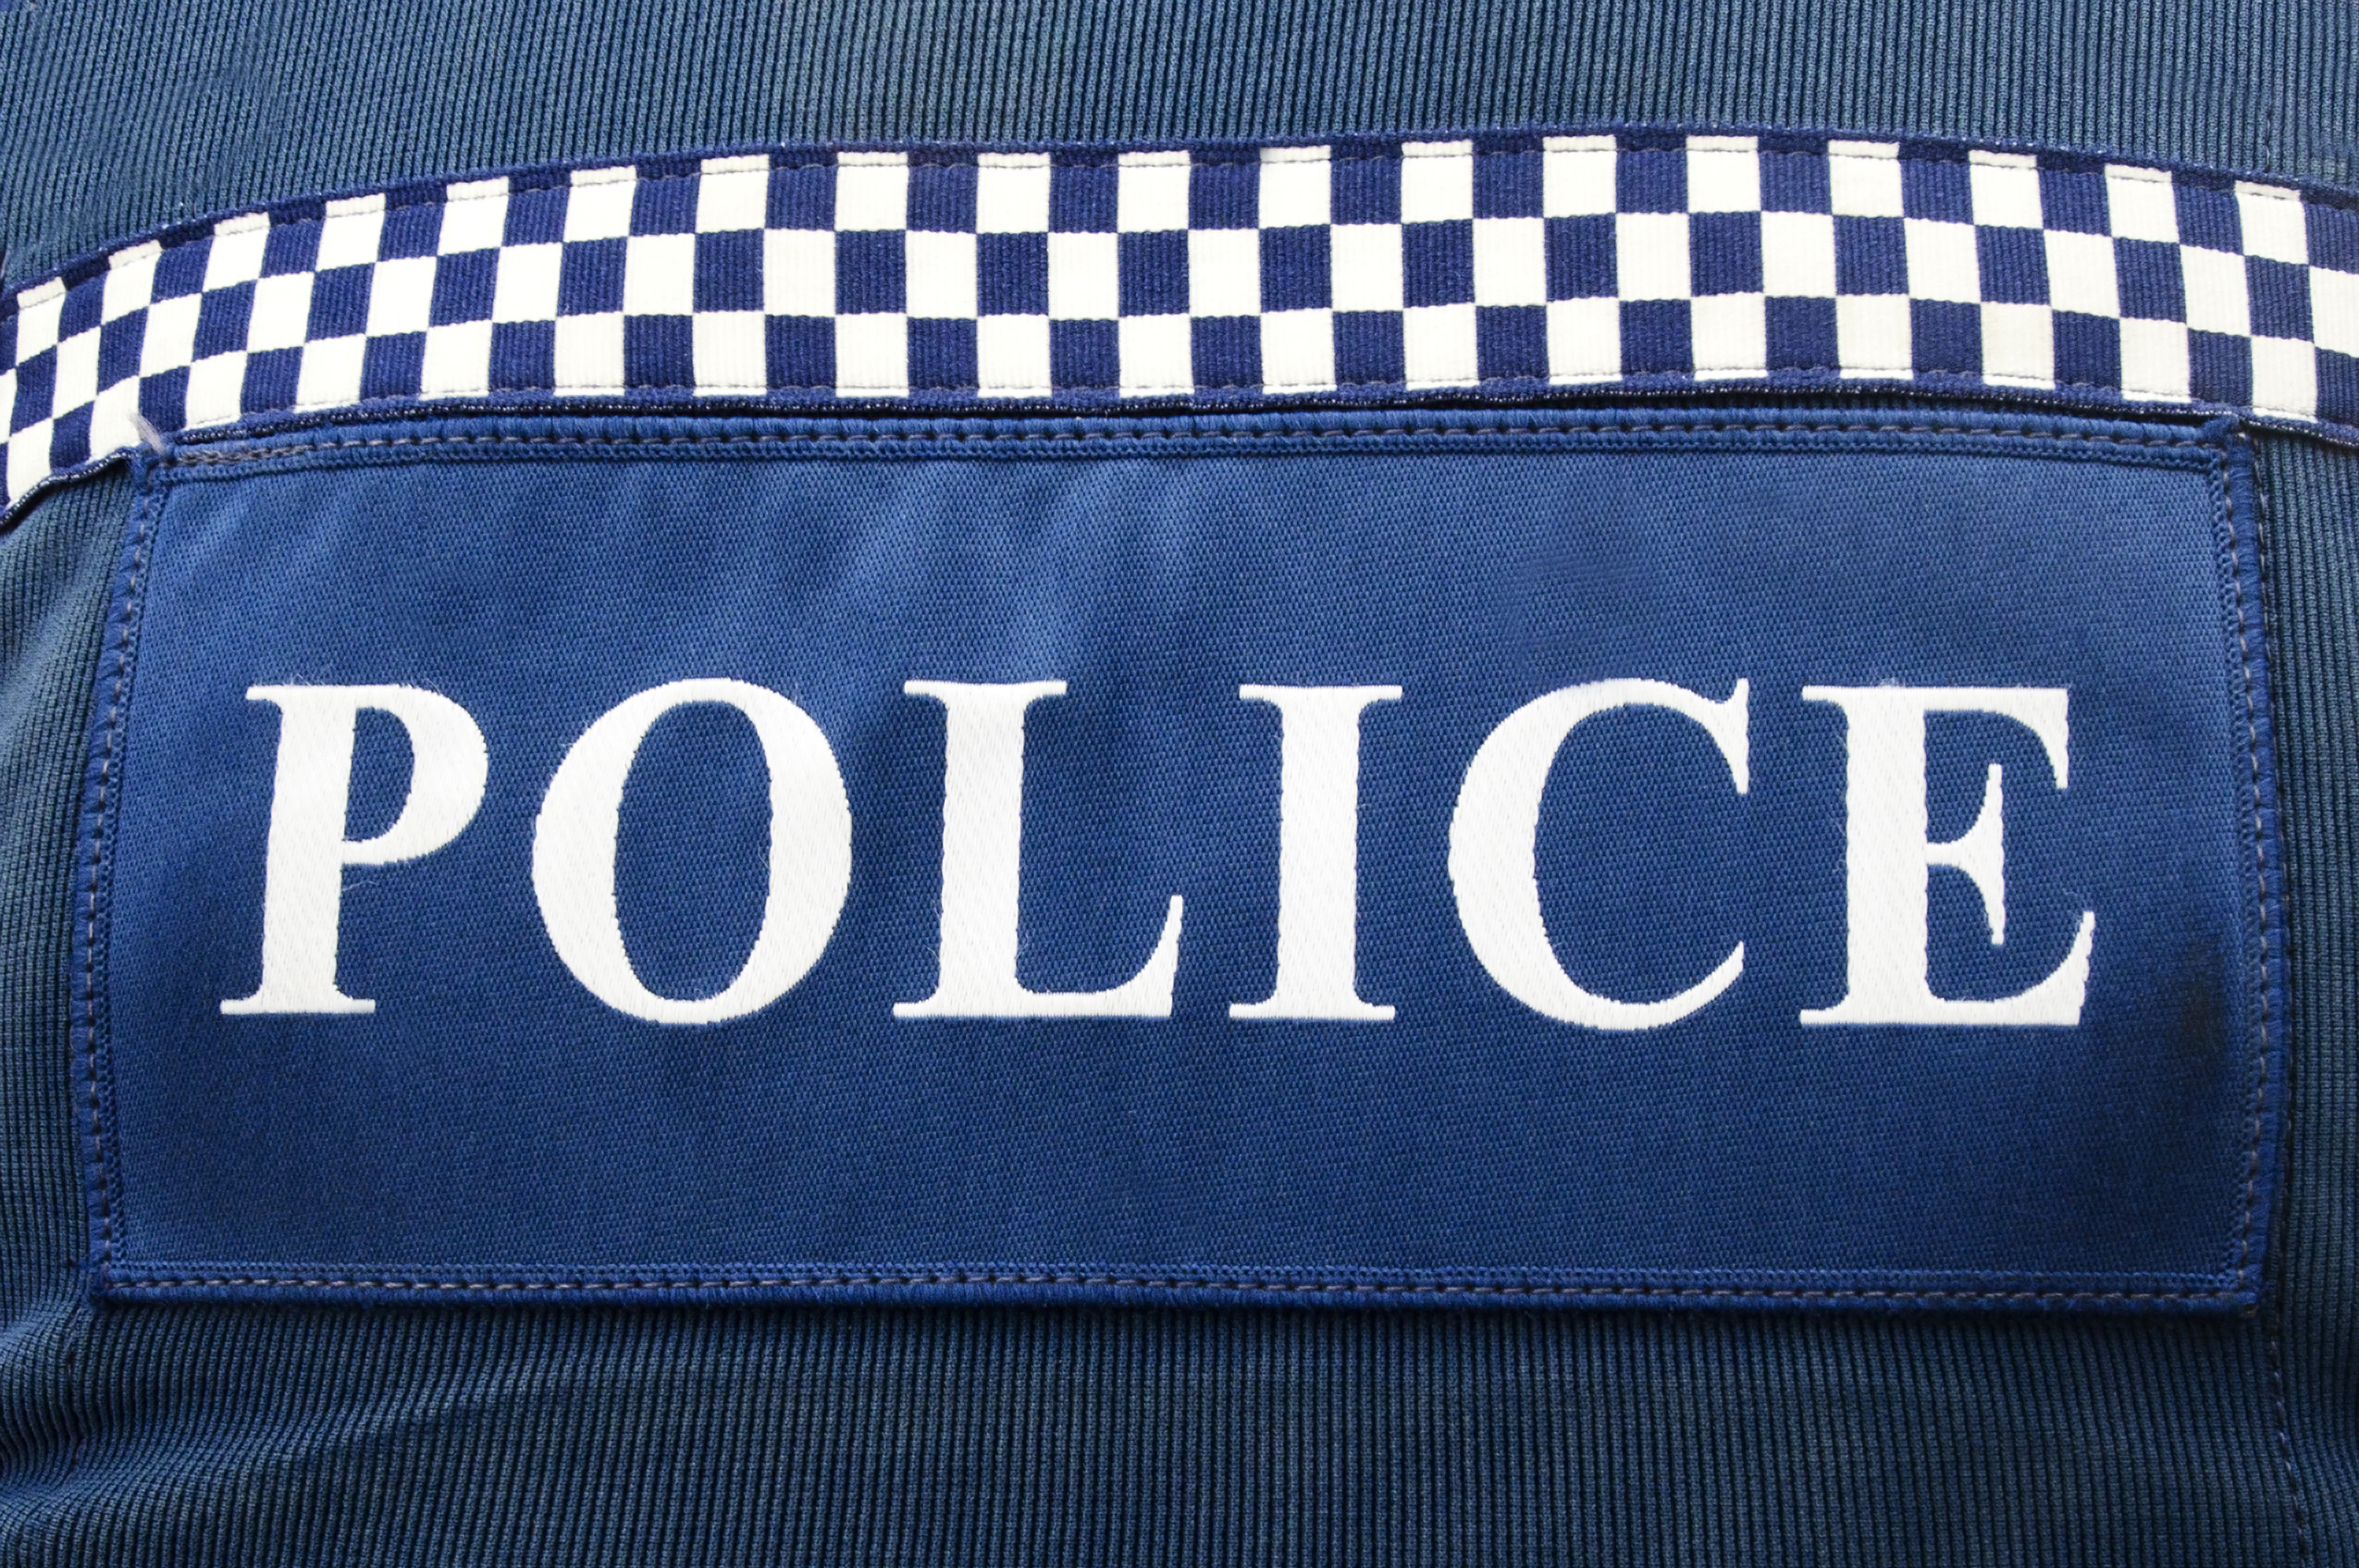 Close-up of NZ Police logo on police uniform.